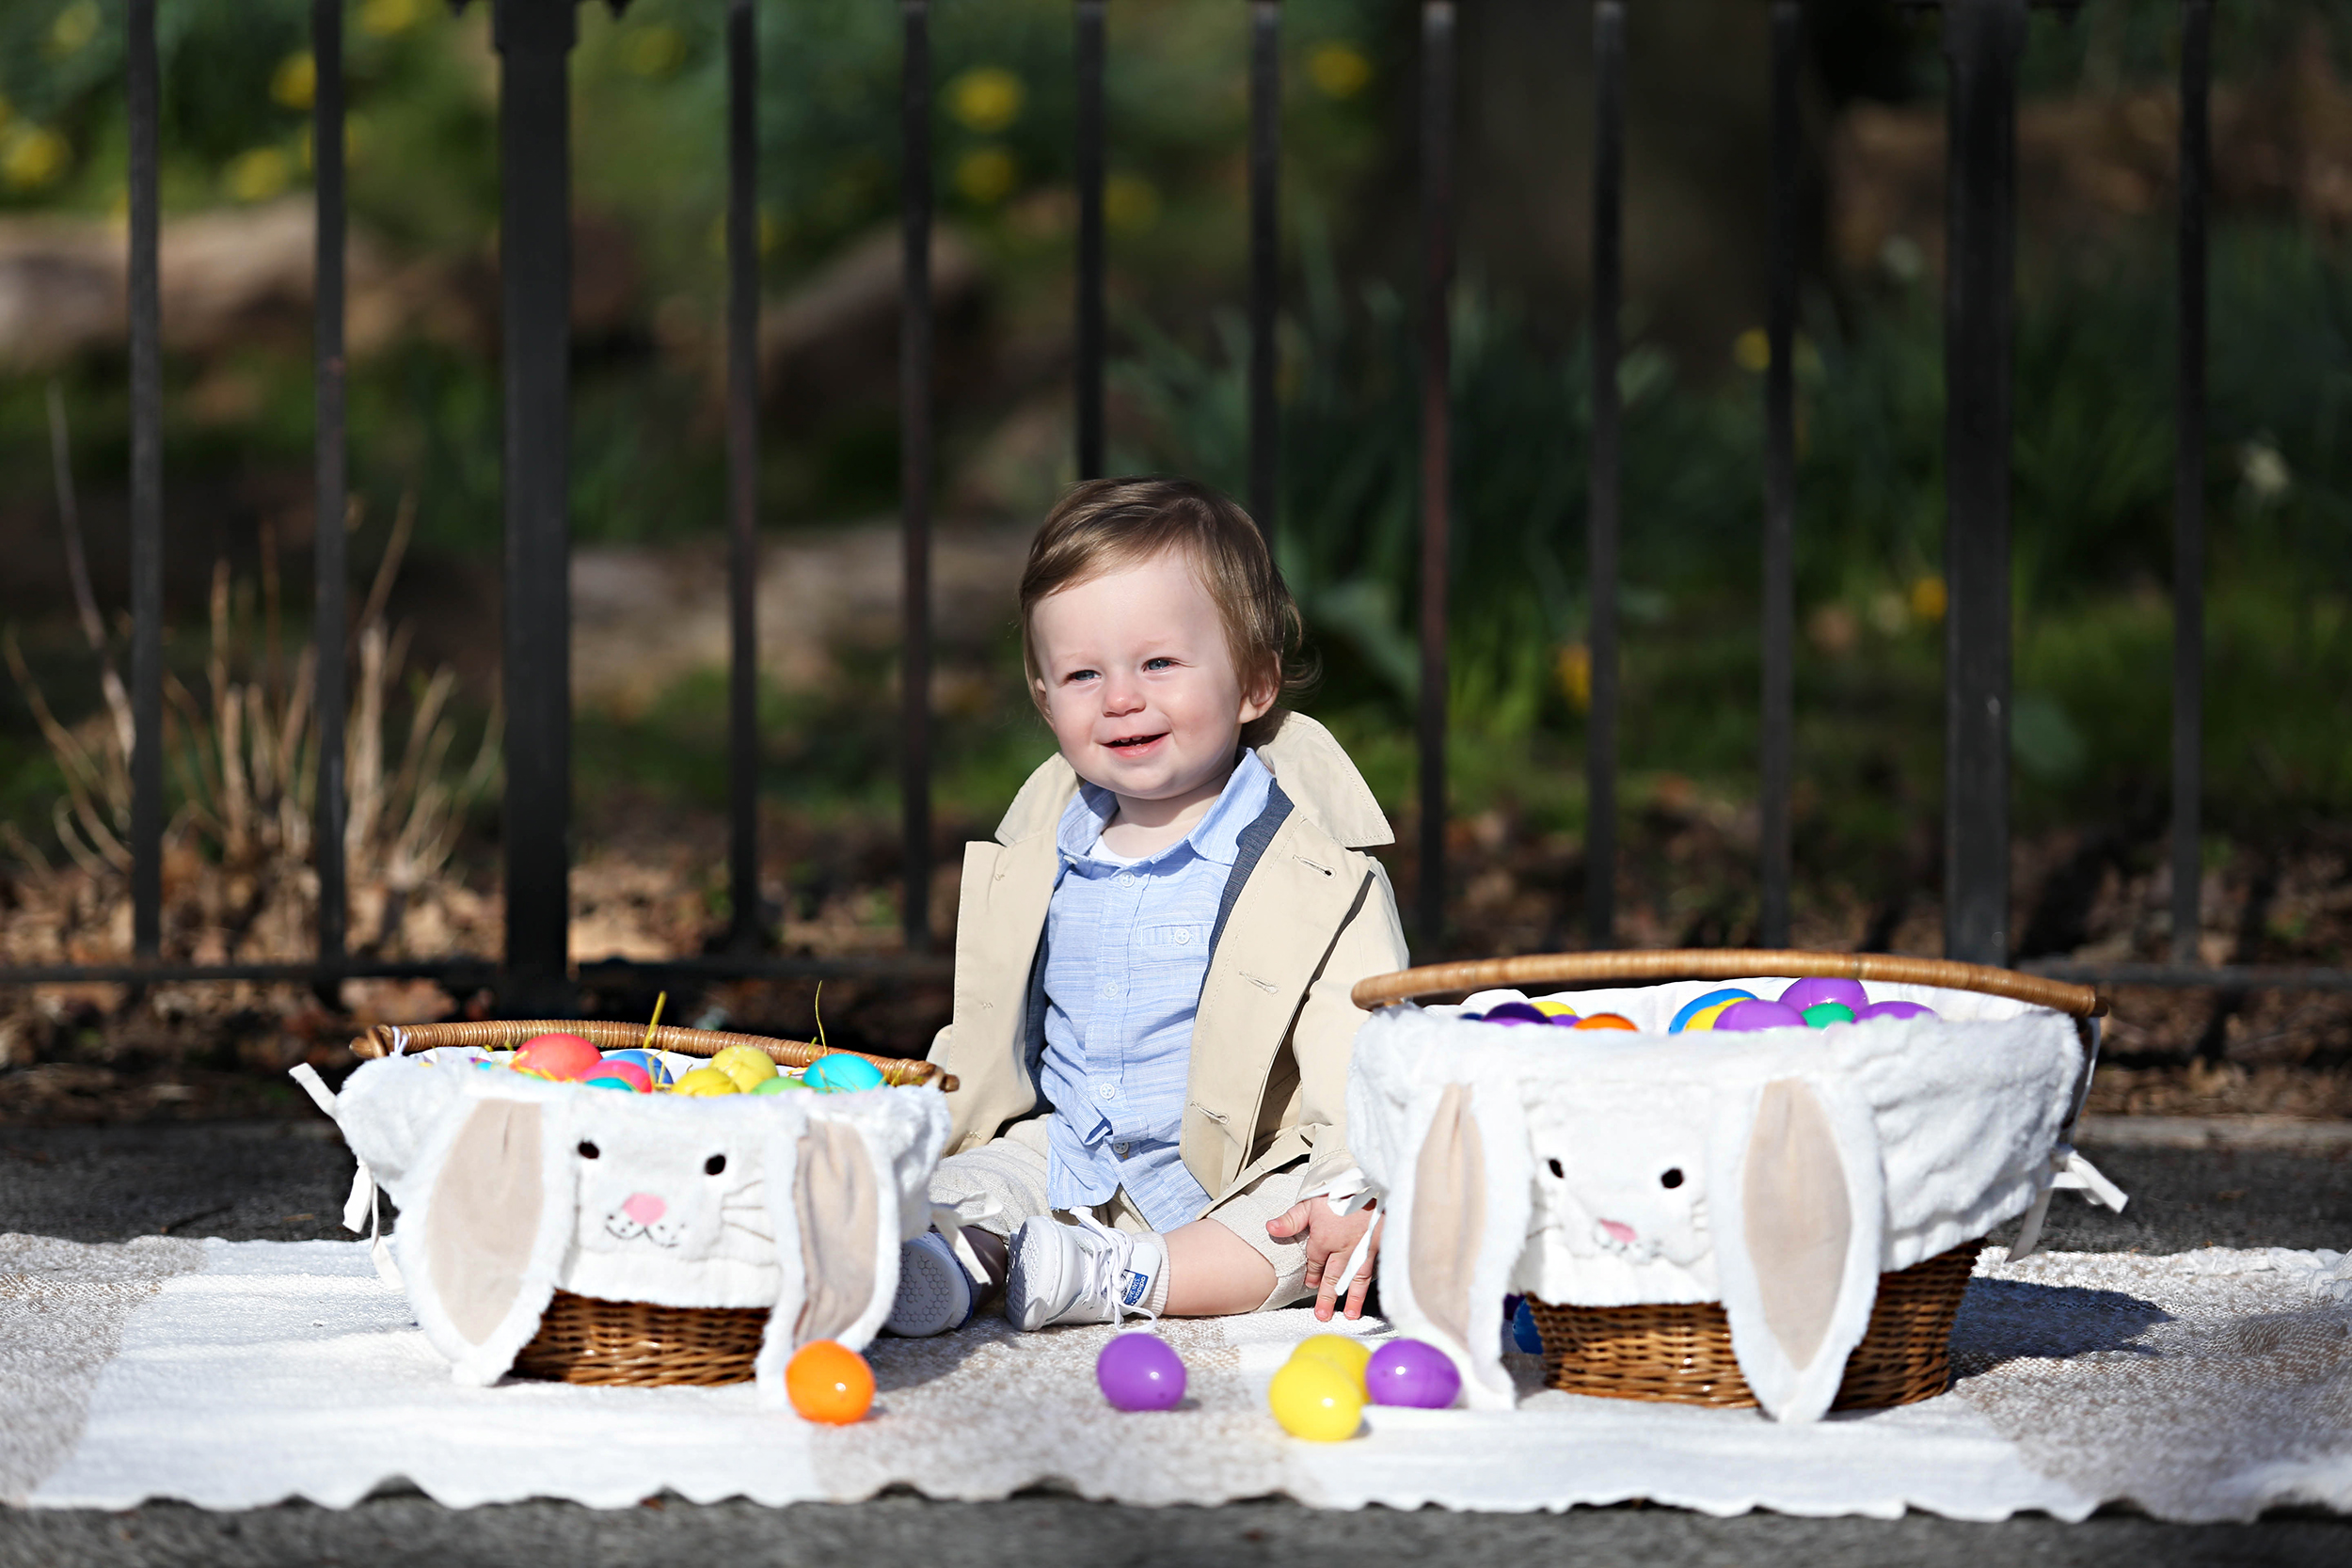 Easter Decorations | Kids Easter Party | Easter Ideas for Kids | Nate's First Easter Party | Brooklyn Blonde x Pottery Barn Kids | Brooklyn Blonde